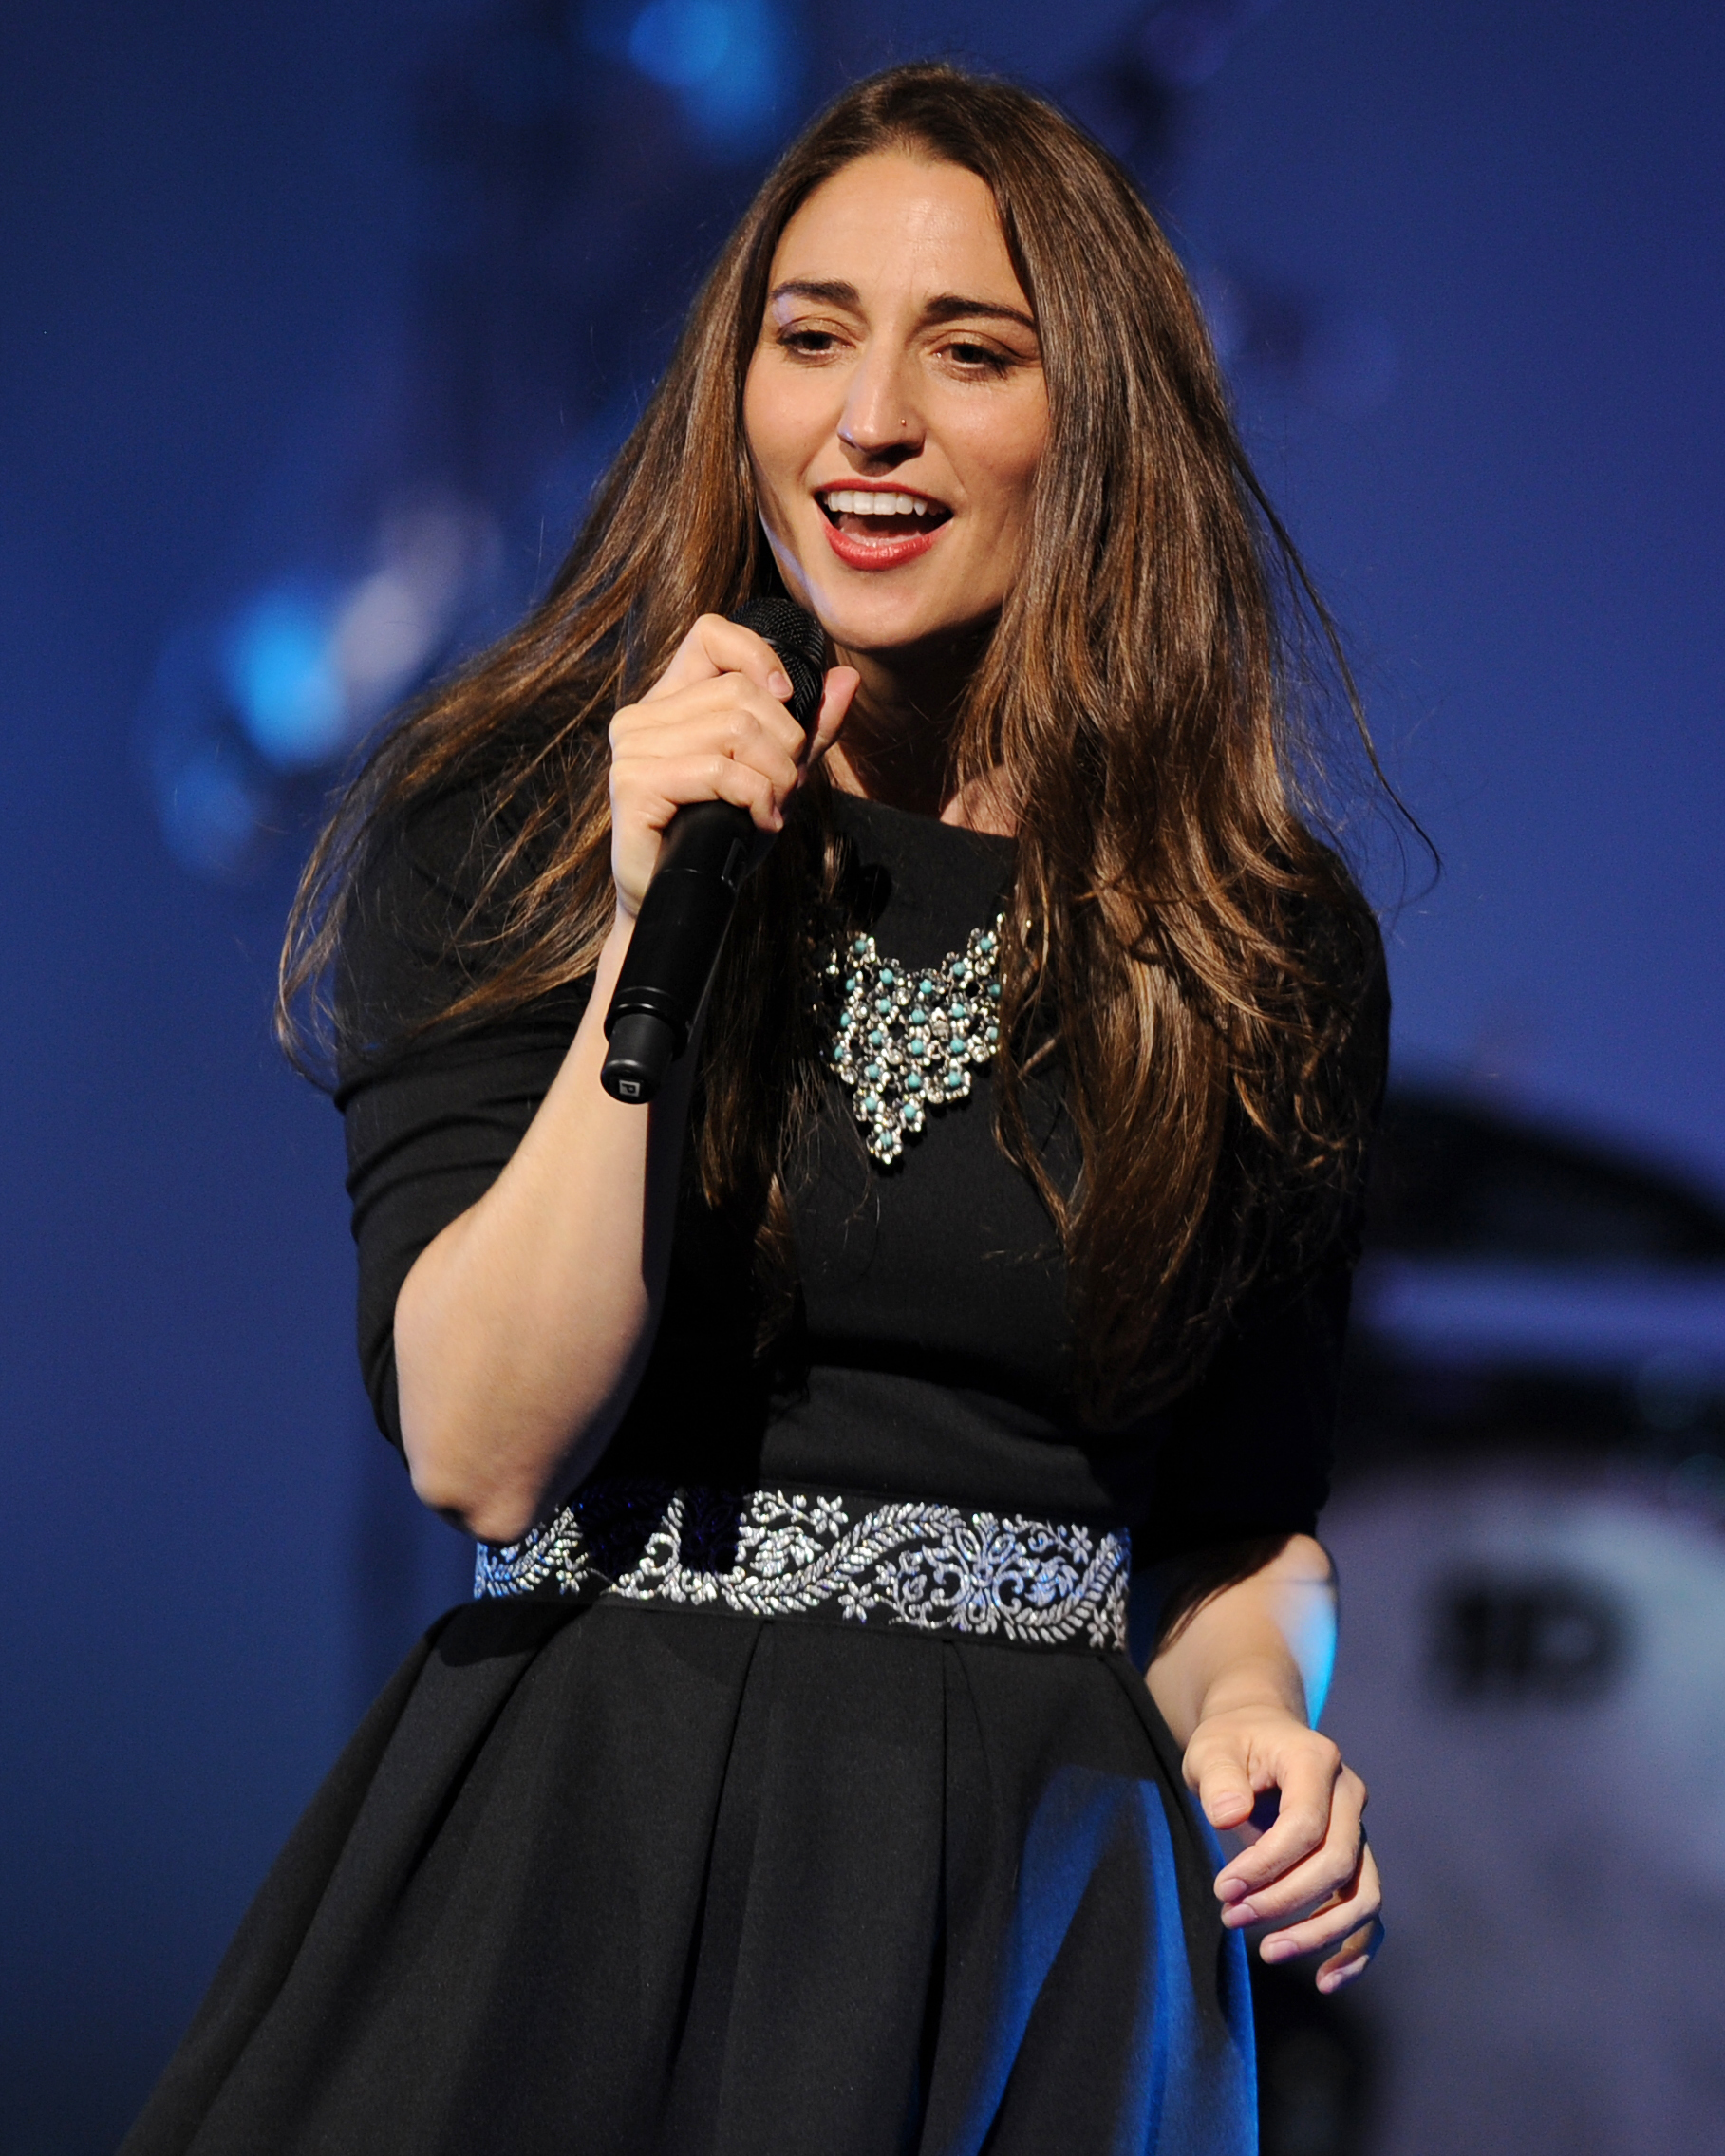 Sara Bareilles performs during the Little Black Dress Tour 2014 at the Seminole Casinos Hard Rock Live on July 25, 2014 in Hollywood, Florida.